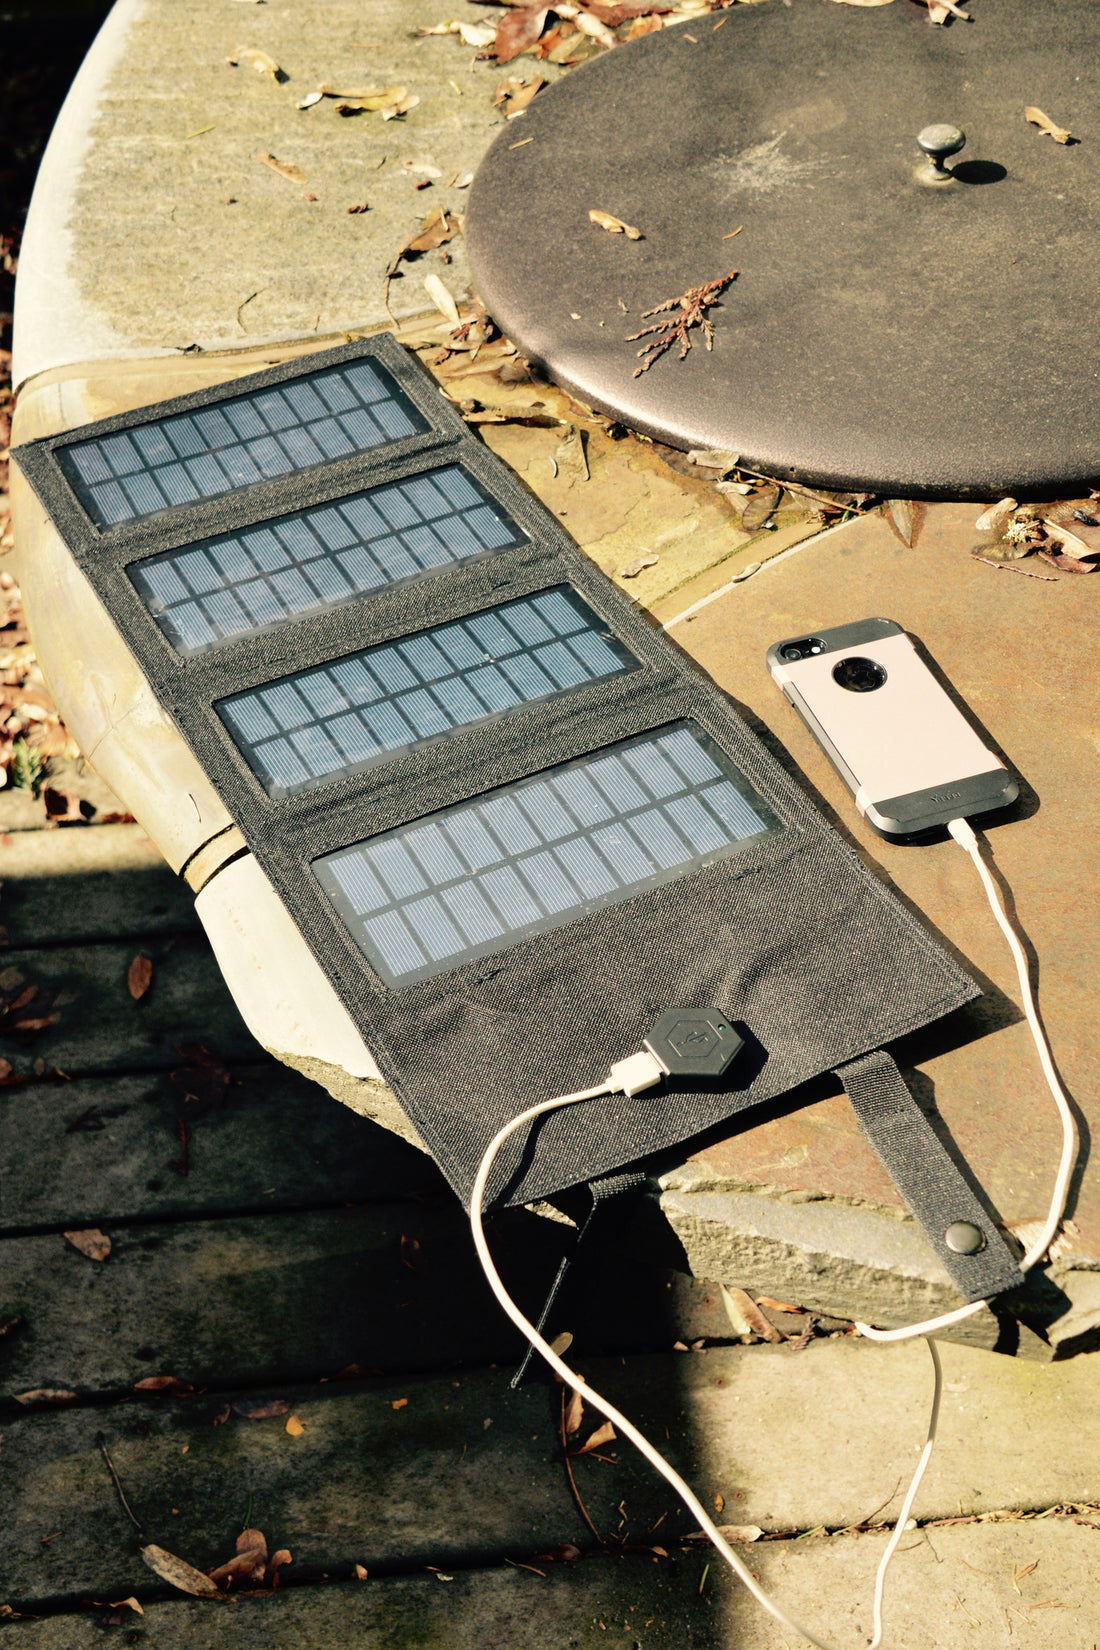 M.O.L.L.E Foldable Solar Charger - Portable and Tactical